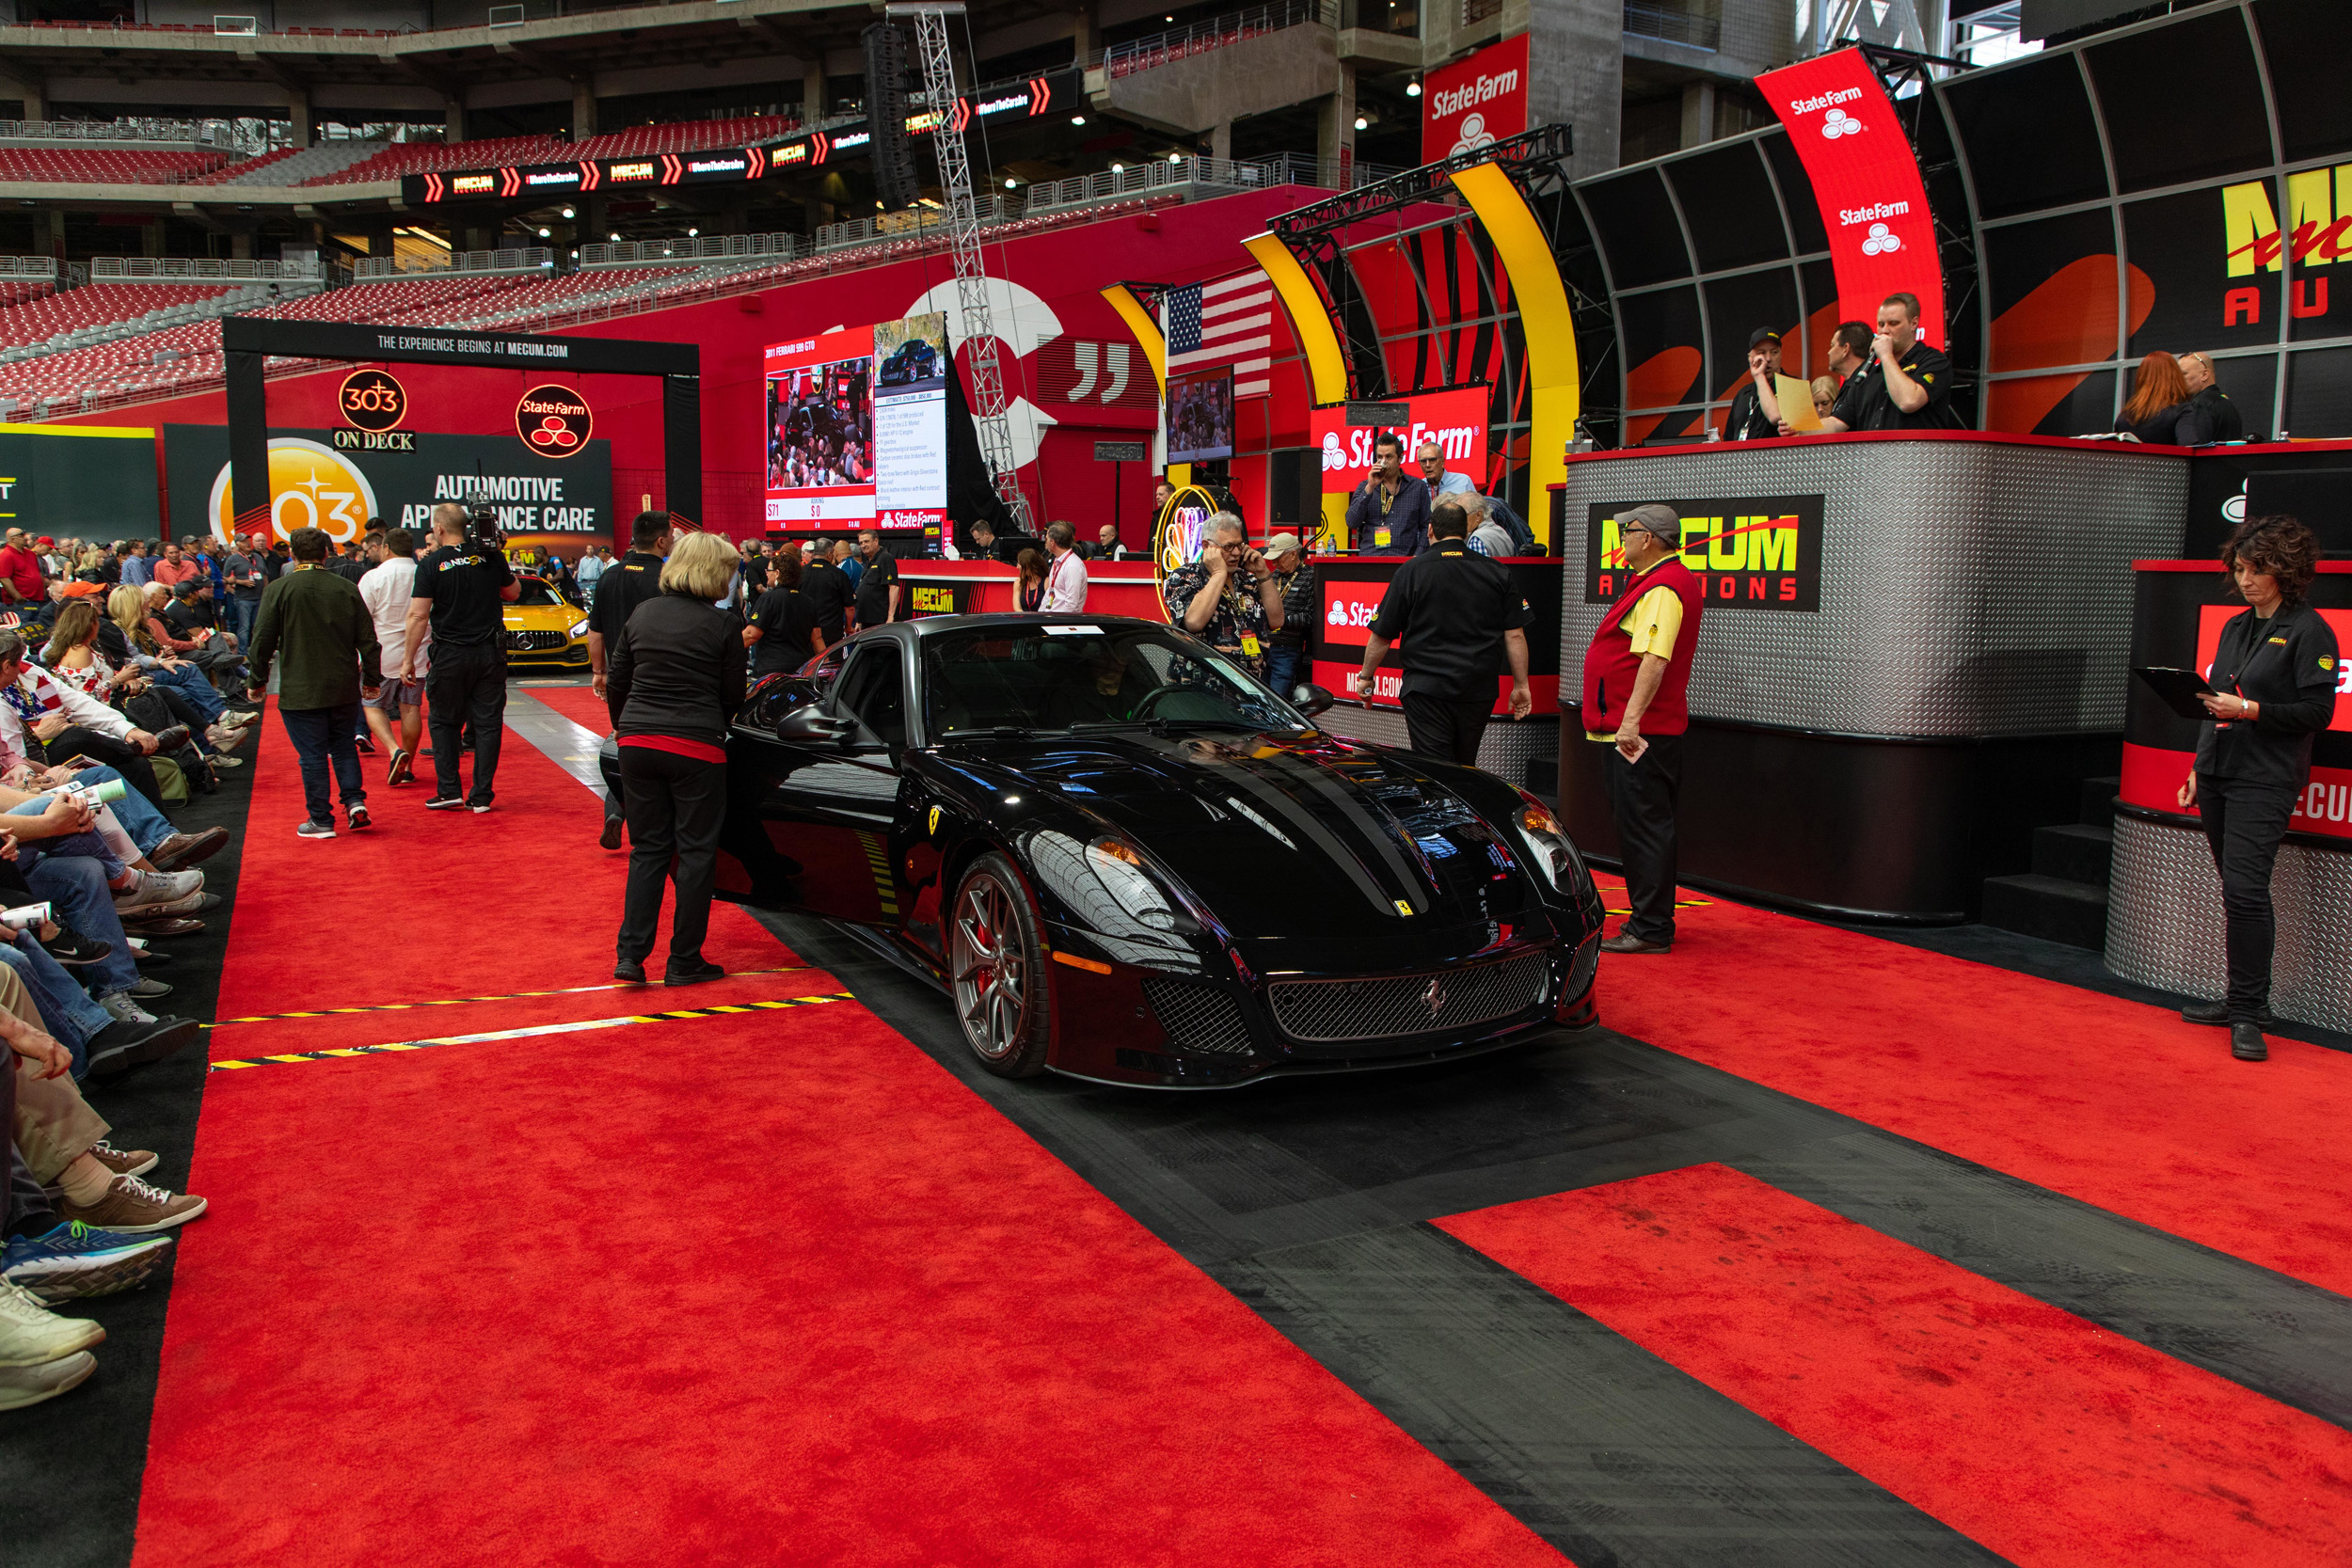 2011 Ferrari 599 GTO (Lot S71) Sold at $770000 - Mecum Auctions Phoenix